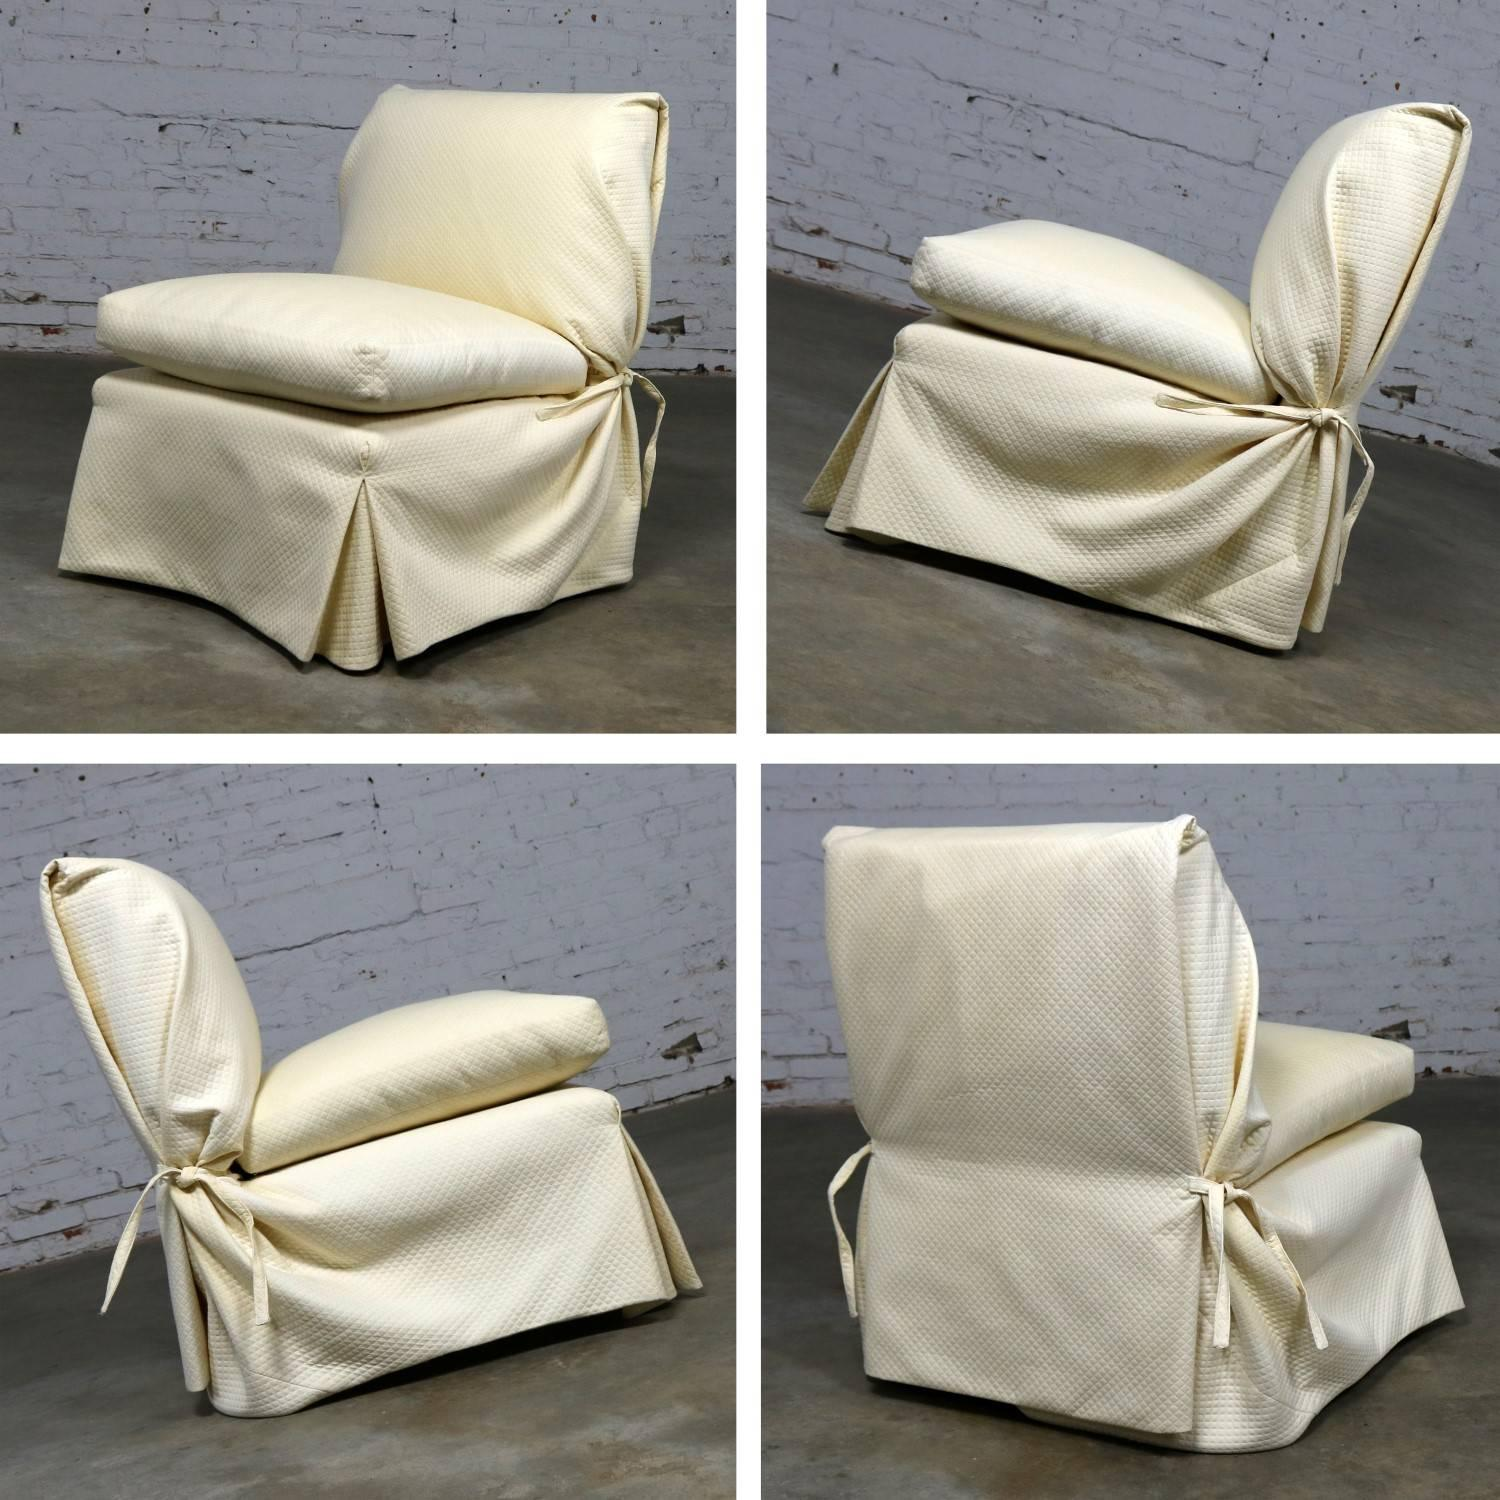 Donghia Slipper Chair By Angelo Donghia, One Slipcovered One Not For Sale  At 1stdibs